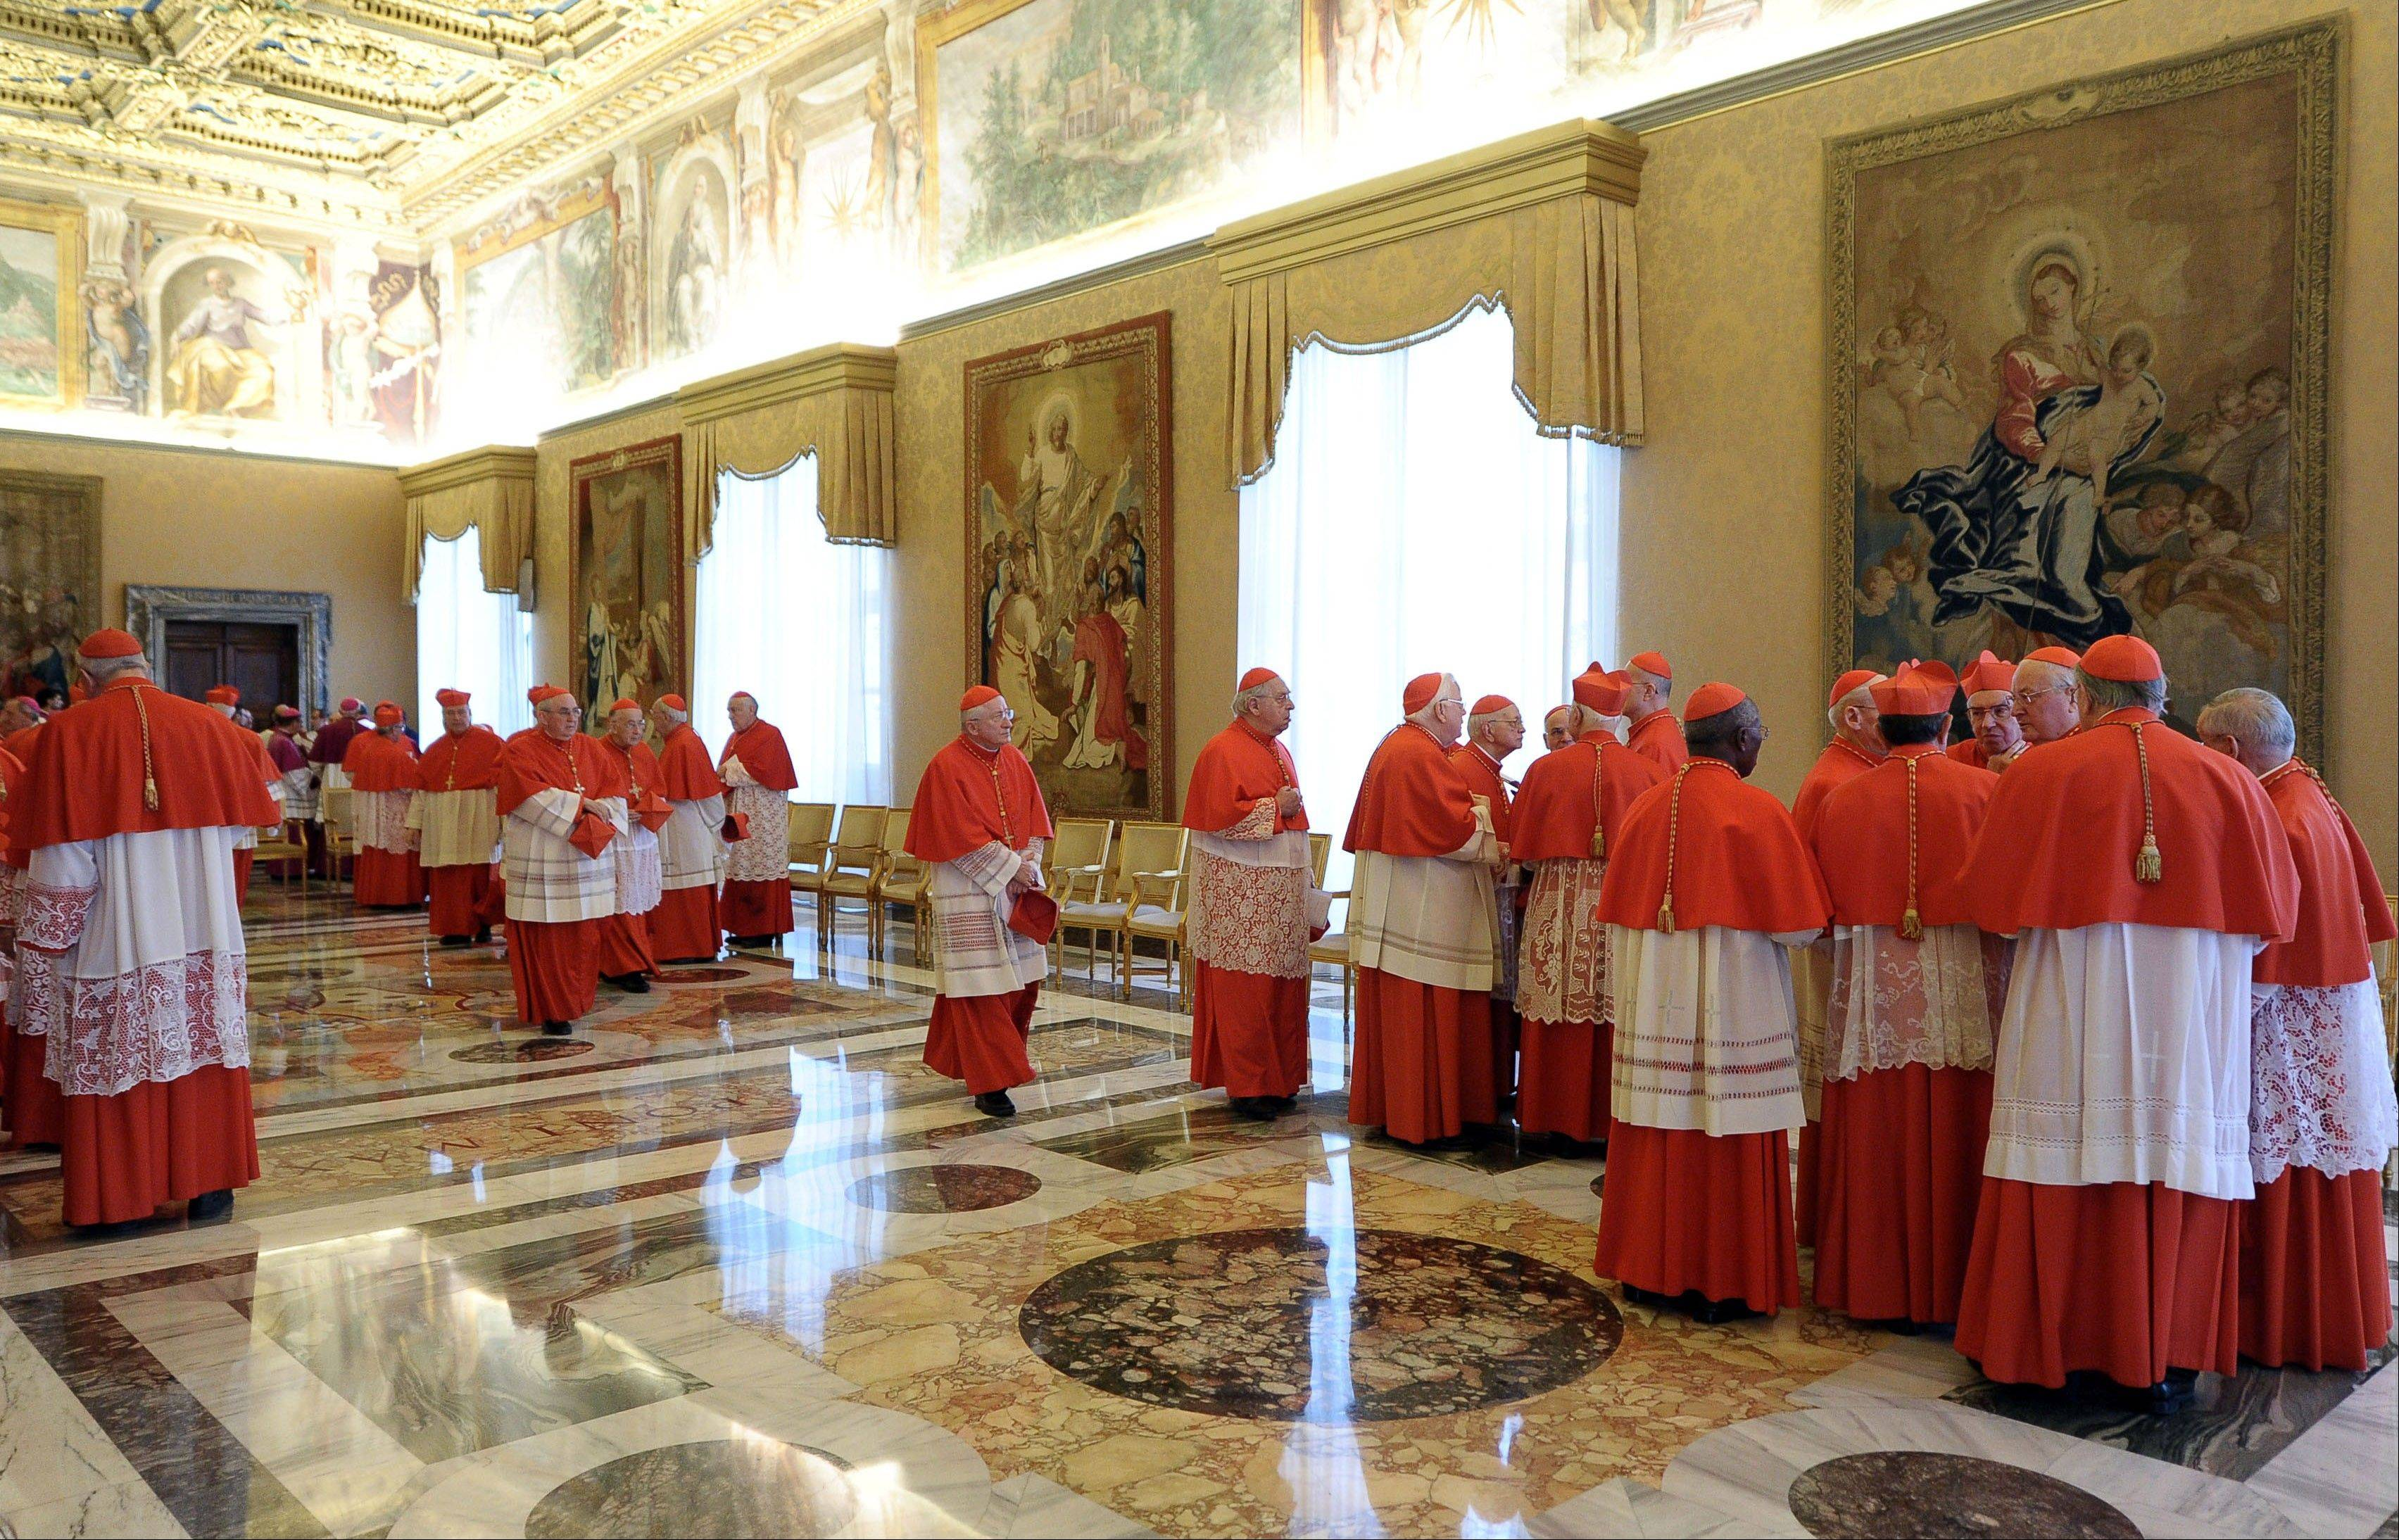 Cardinals talk among themselves after Pope Benedict XVI, not pictured, announced his resignation Monday during a meeting with the cardinals, at the Vatican. The decision sets the stage for a conclave to elect a new pope before the end of March.